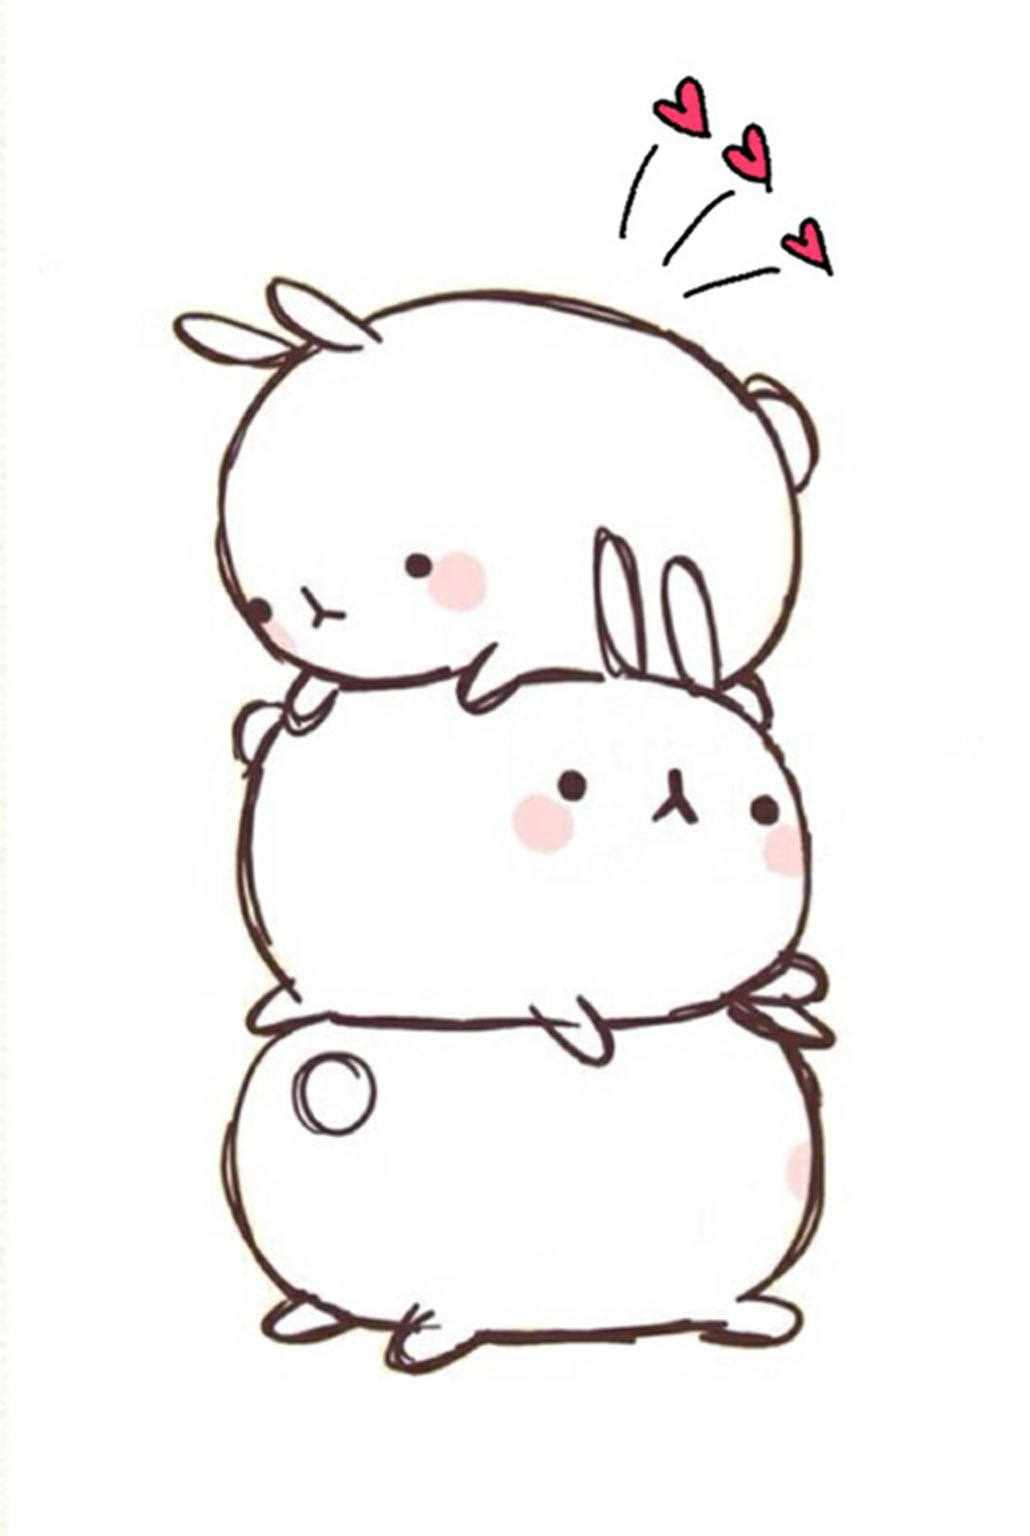 Molang They Are So Cute Graphic Art In 2019 Kawaii